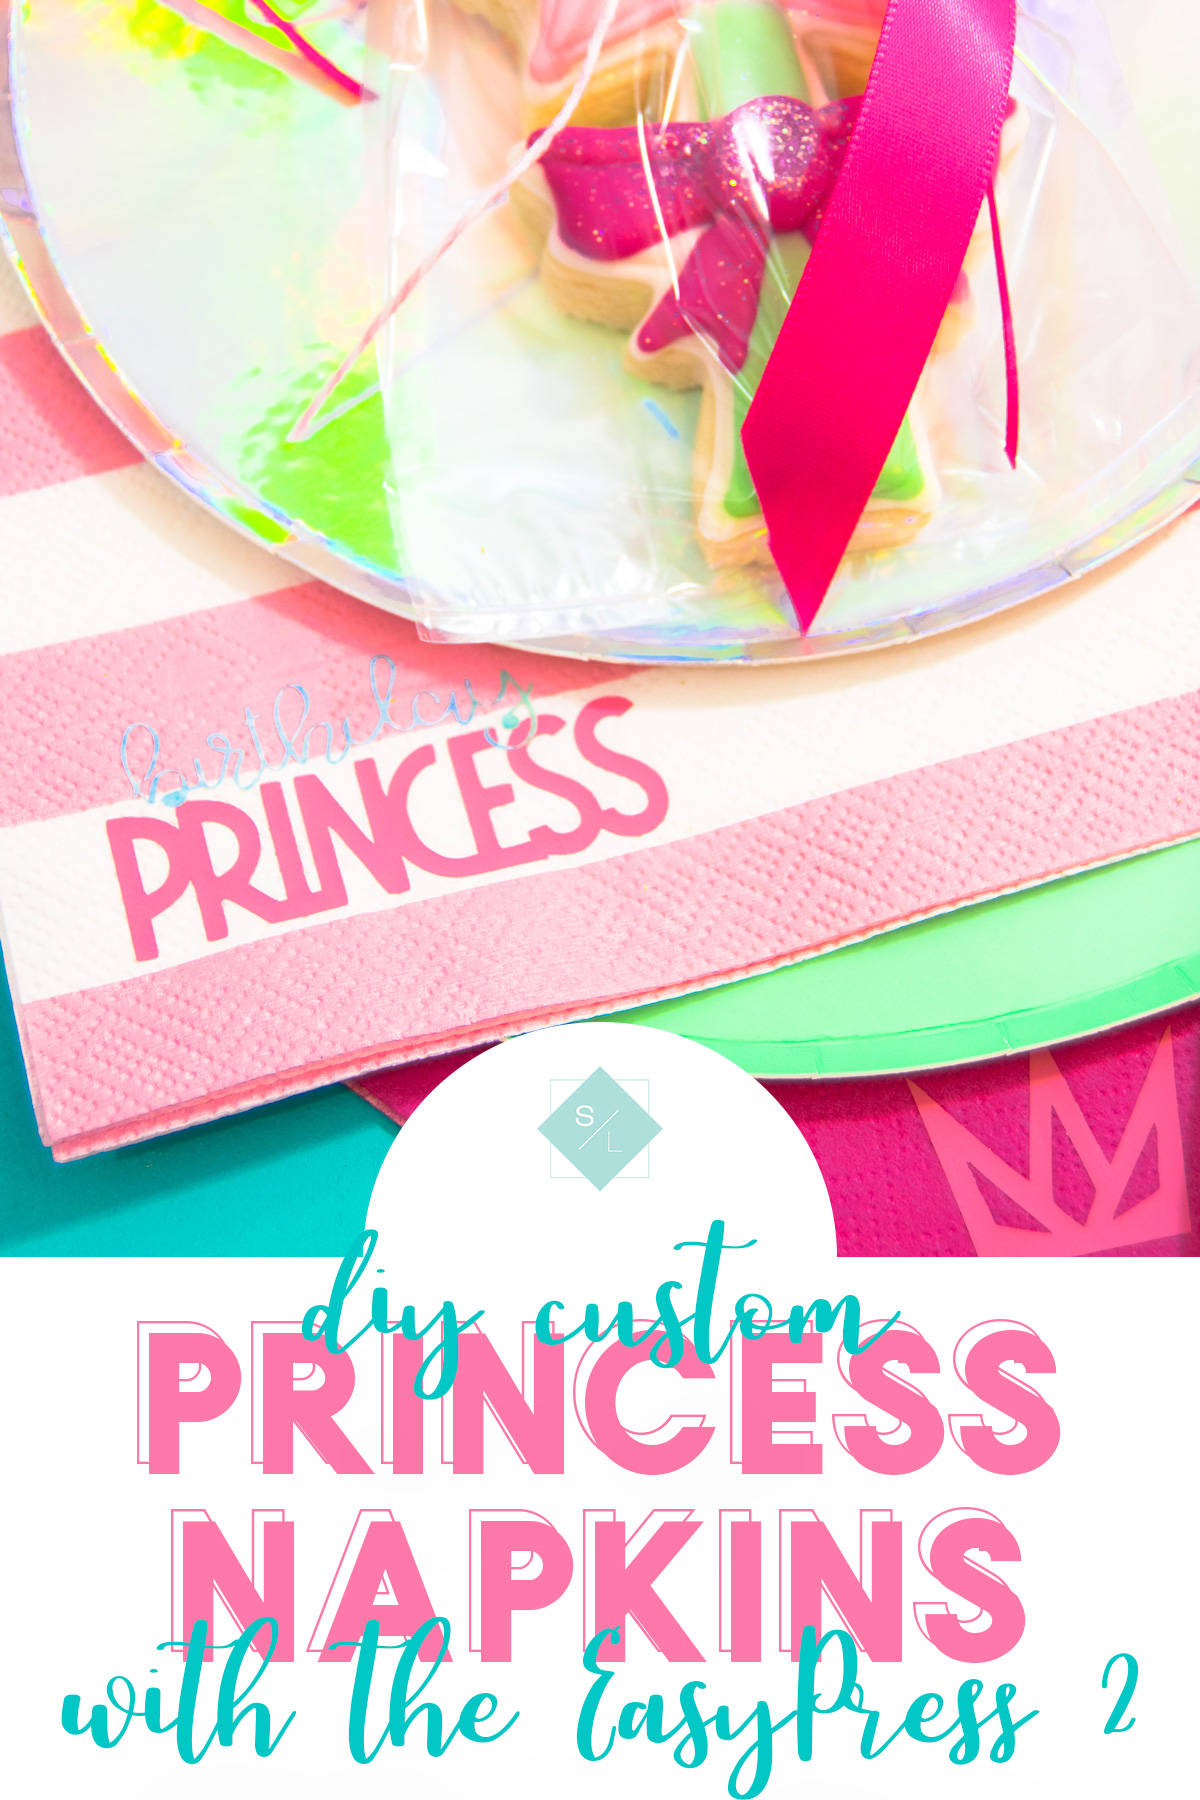 Create your own custom printed napkins at home and at a fraction of the cost. Personalize party napkins to fit any theme. #cricutmade #CricutEasyPress2 #ad #Cricut